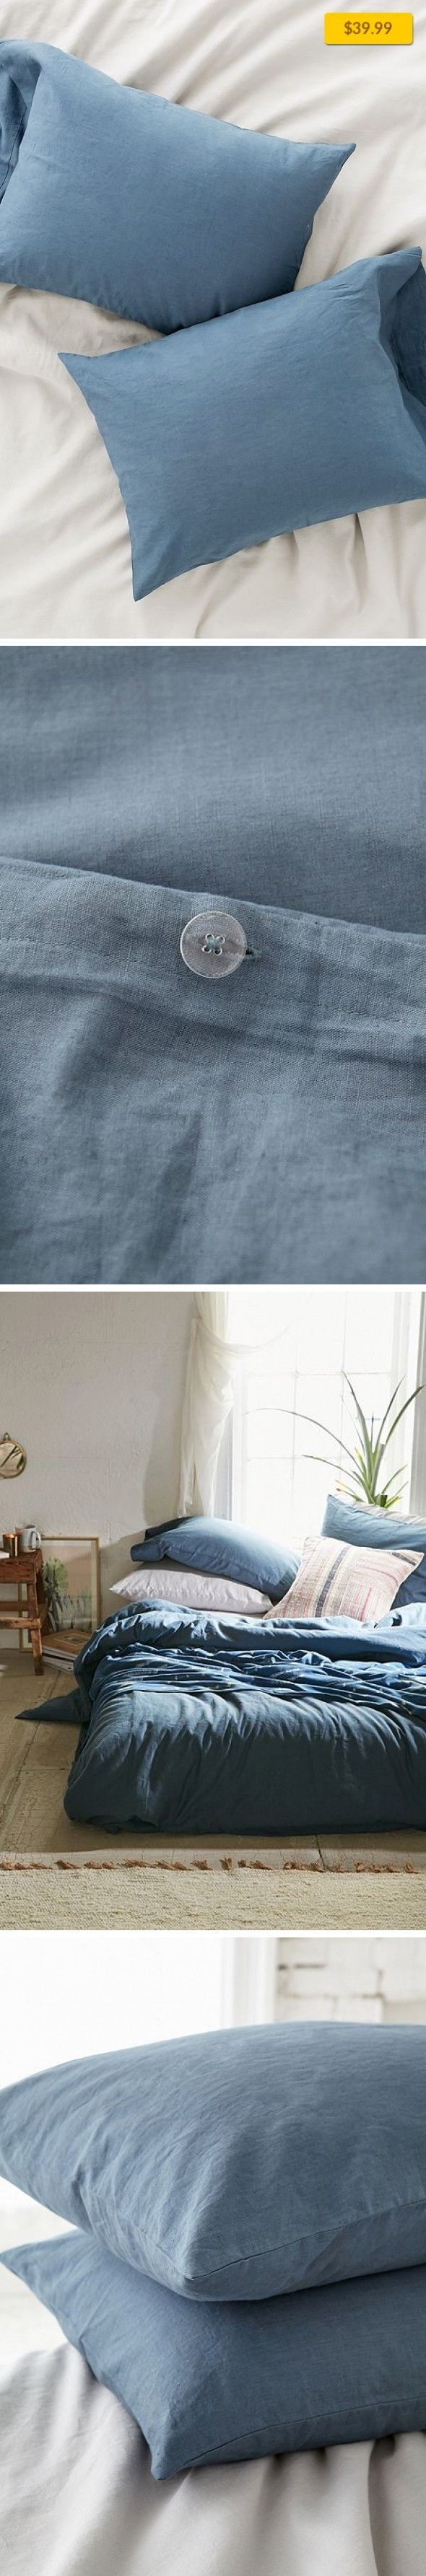 Assembly Home Linen Blend Pillowcase Set Apartment, Bedding, Pillowcases + Shams   Set of 2 linen blend pillowcases perfect for any bedding. Soft + comfy materials great for curling up. Versatile solid design works with rustic, romantic or modern bedding for a totally customizable look. Only at Urban Outfitters. Content + Care - Set of 2 - 55% linen, 45% cotton - Machine wash - Imported Size - Len...